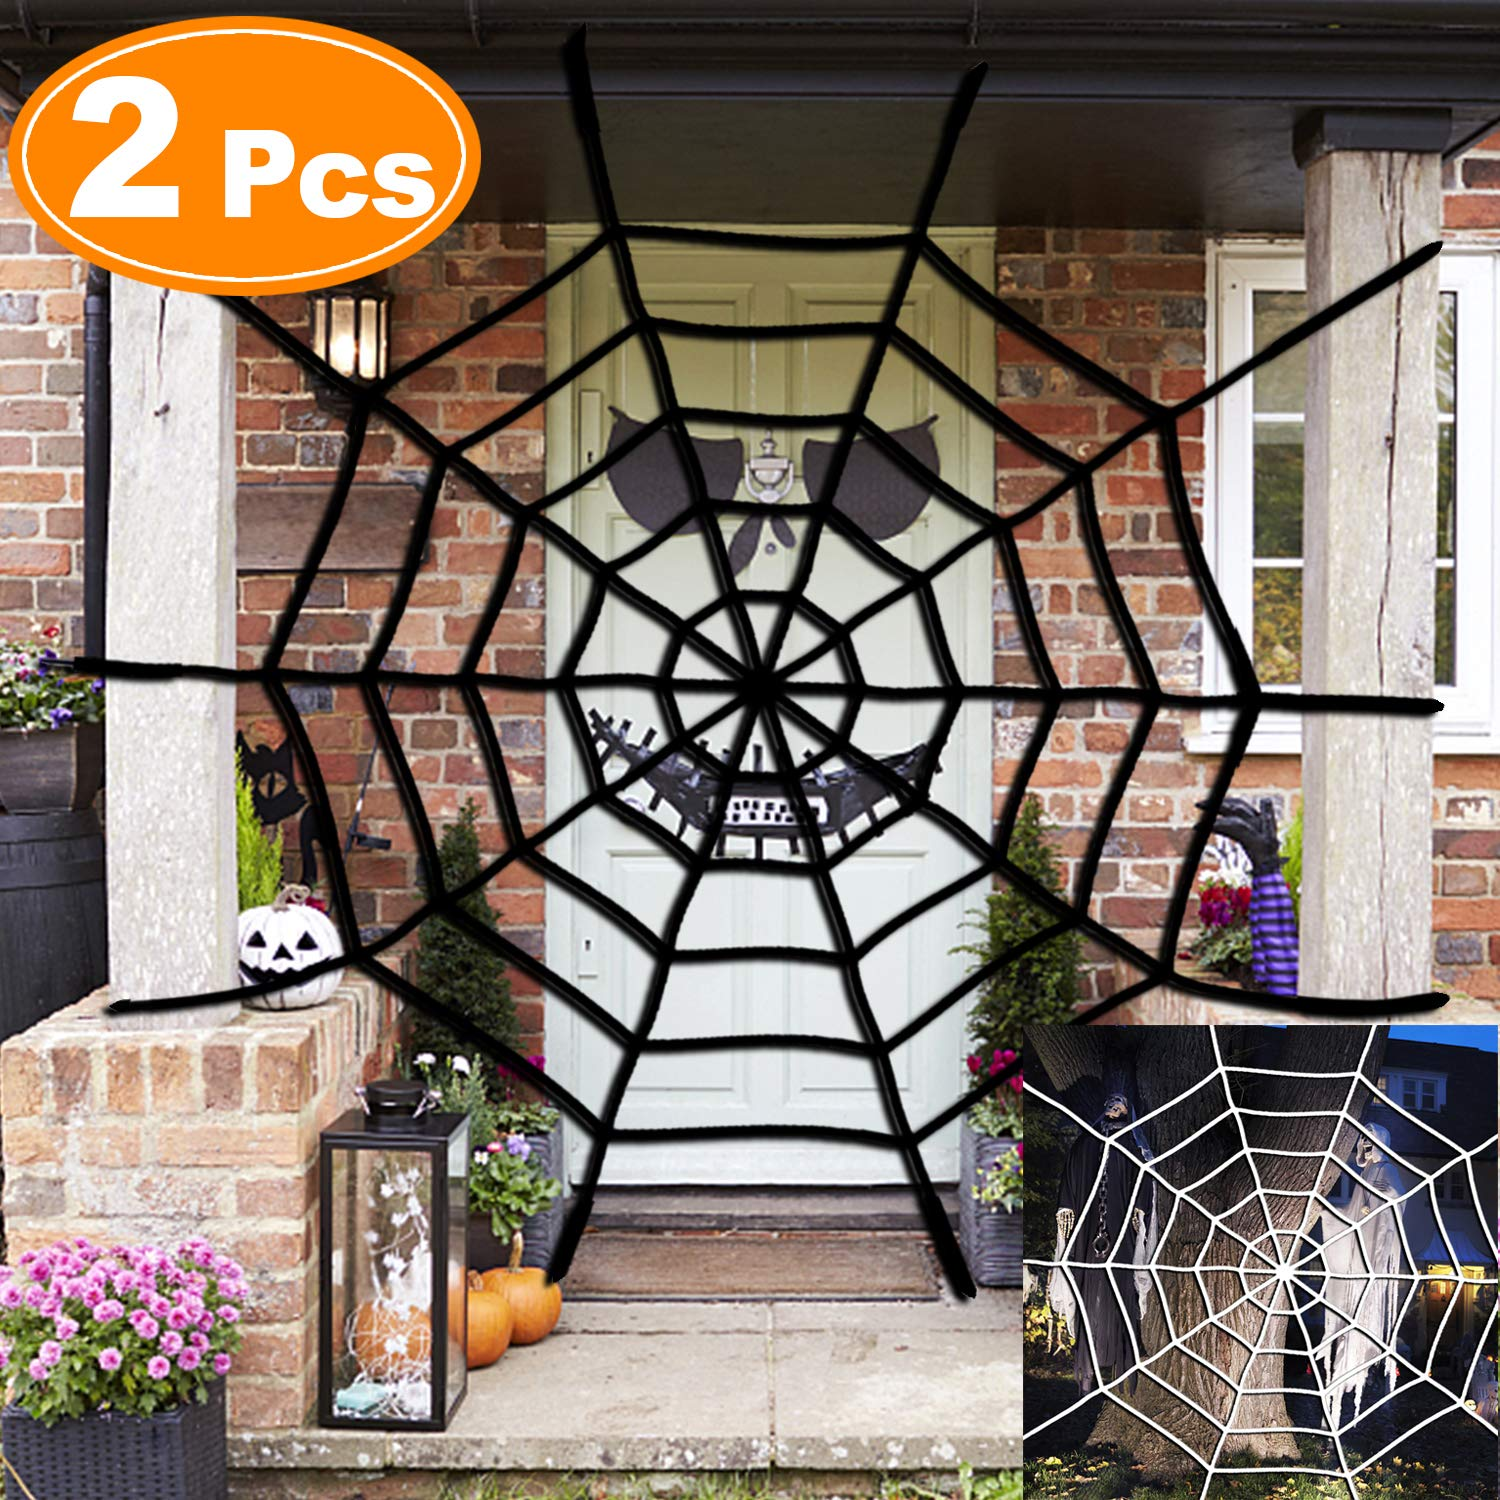 SIXONE 2Pcs Halloween Spider Web 5ft White Black Giant Large Mega Spider webbing Hanging Super Stretch Cobweb Set Halloween Decorations for Party Supplies Outdoor Indoor Window Yard